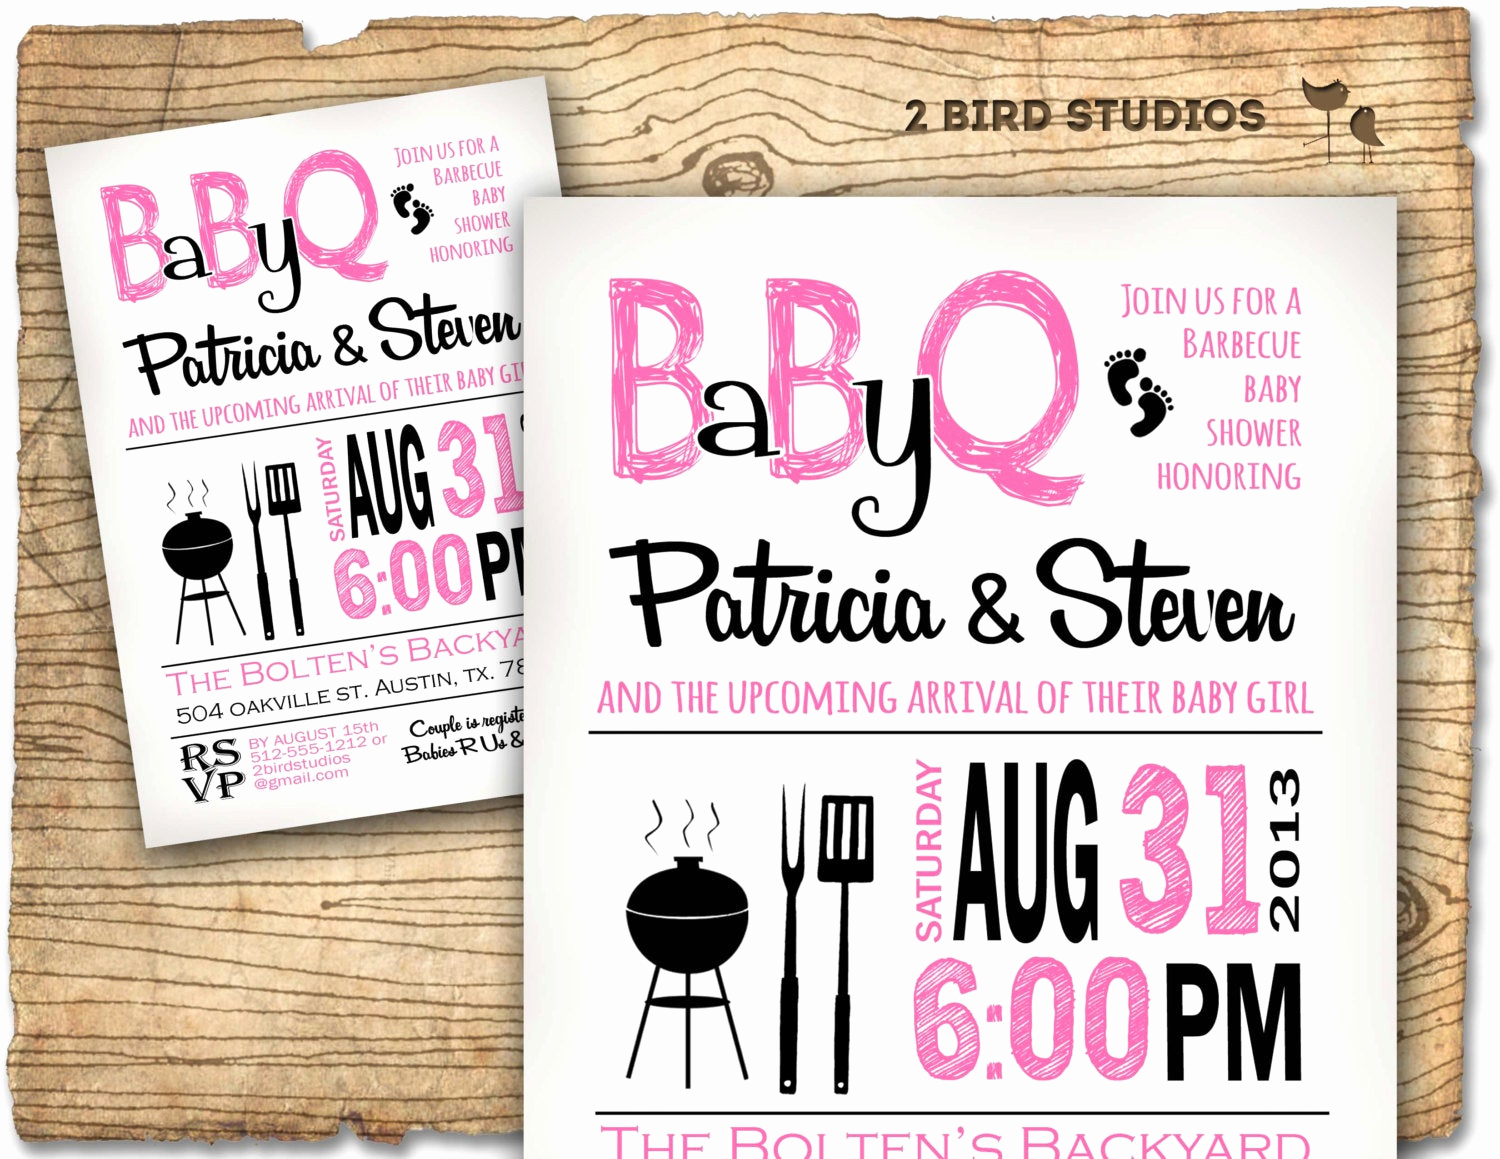 Baby Shower Bbq Invitation Inspirational Bbq Baby Shower Invitation Baby Q Baby Shower Invite Coed